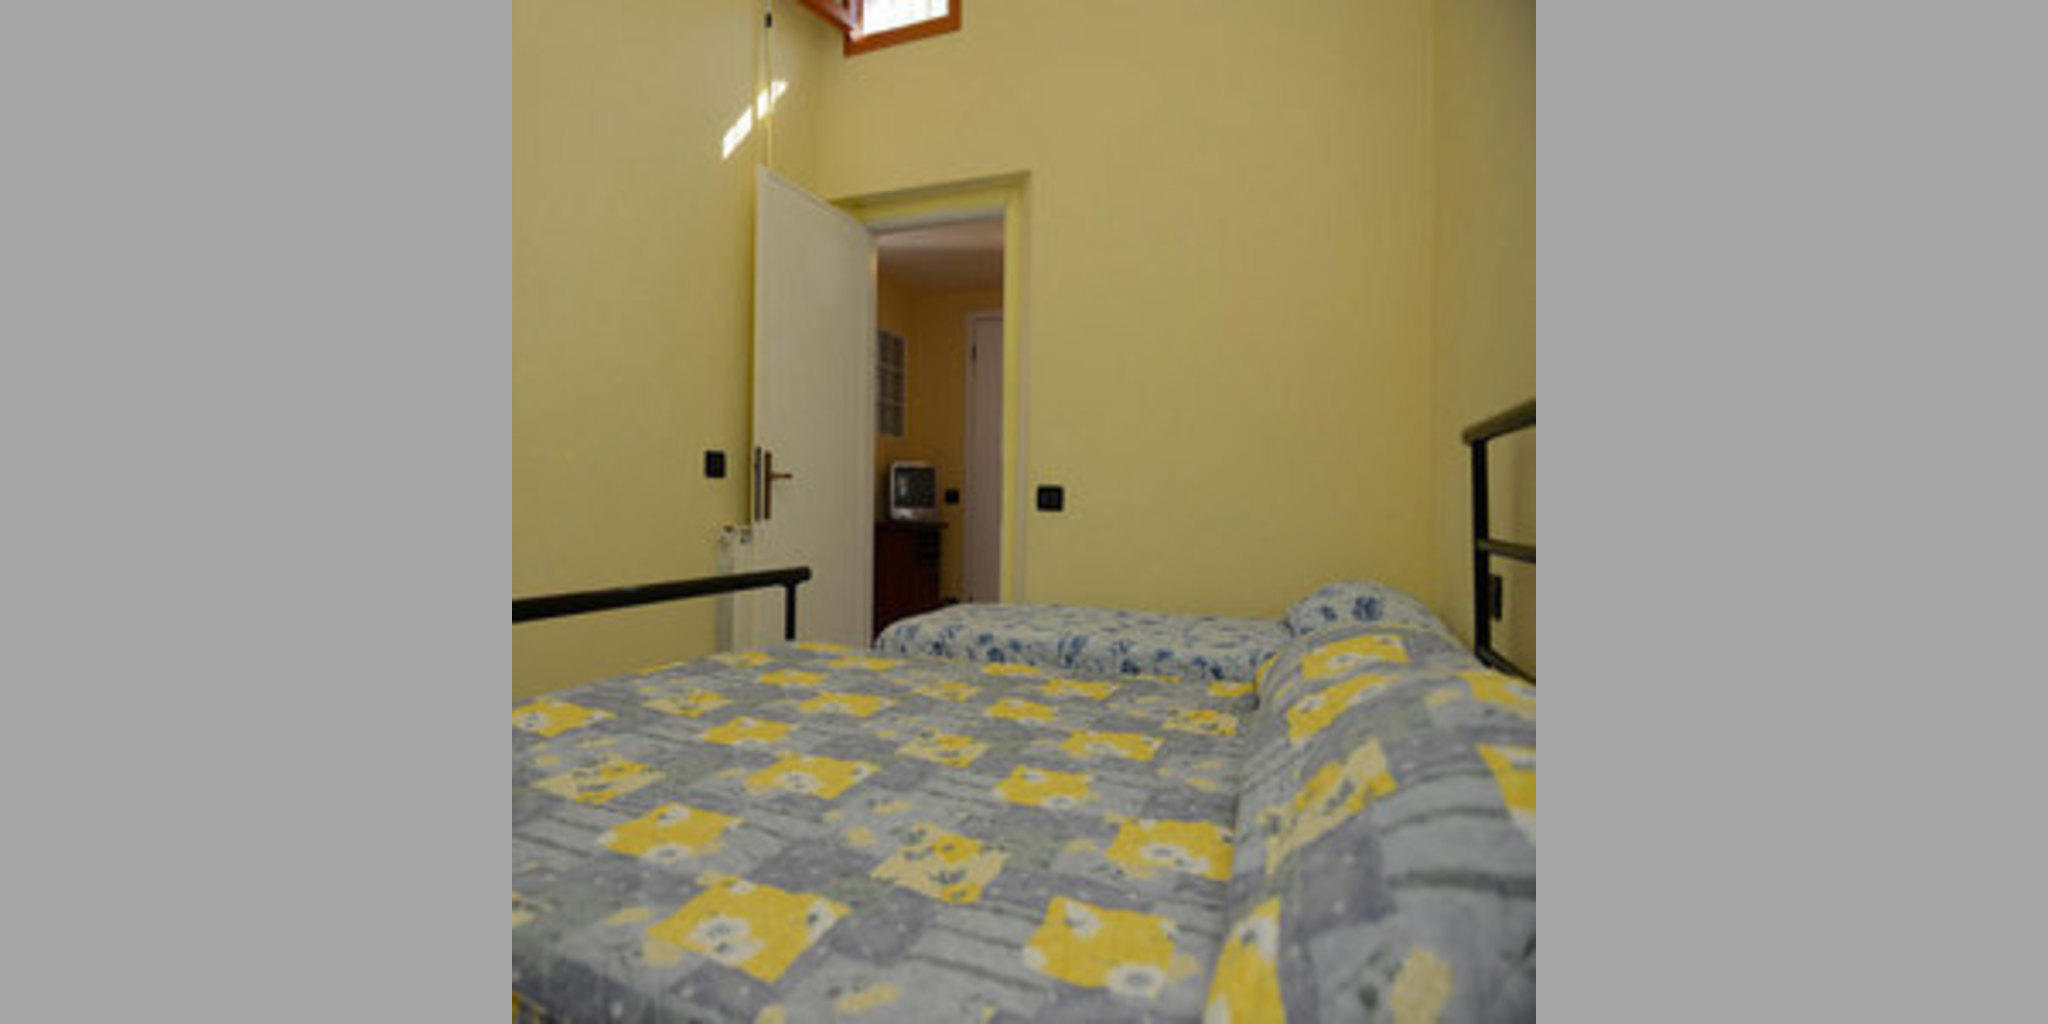 Bed & Breakfast San Miniato - San Miniato